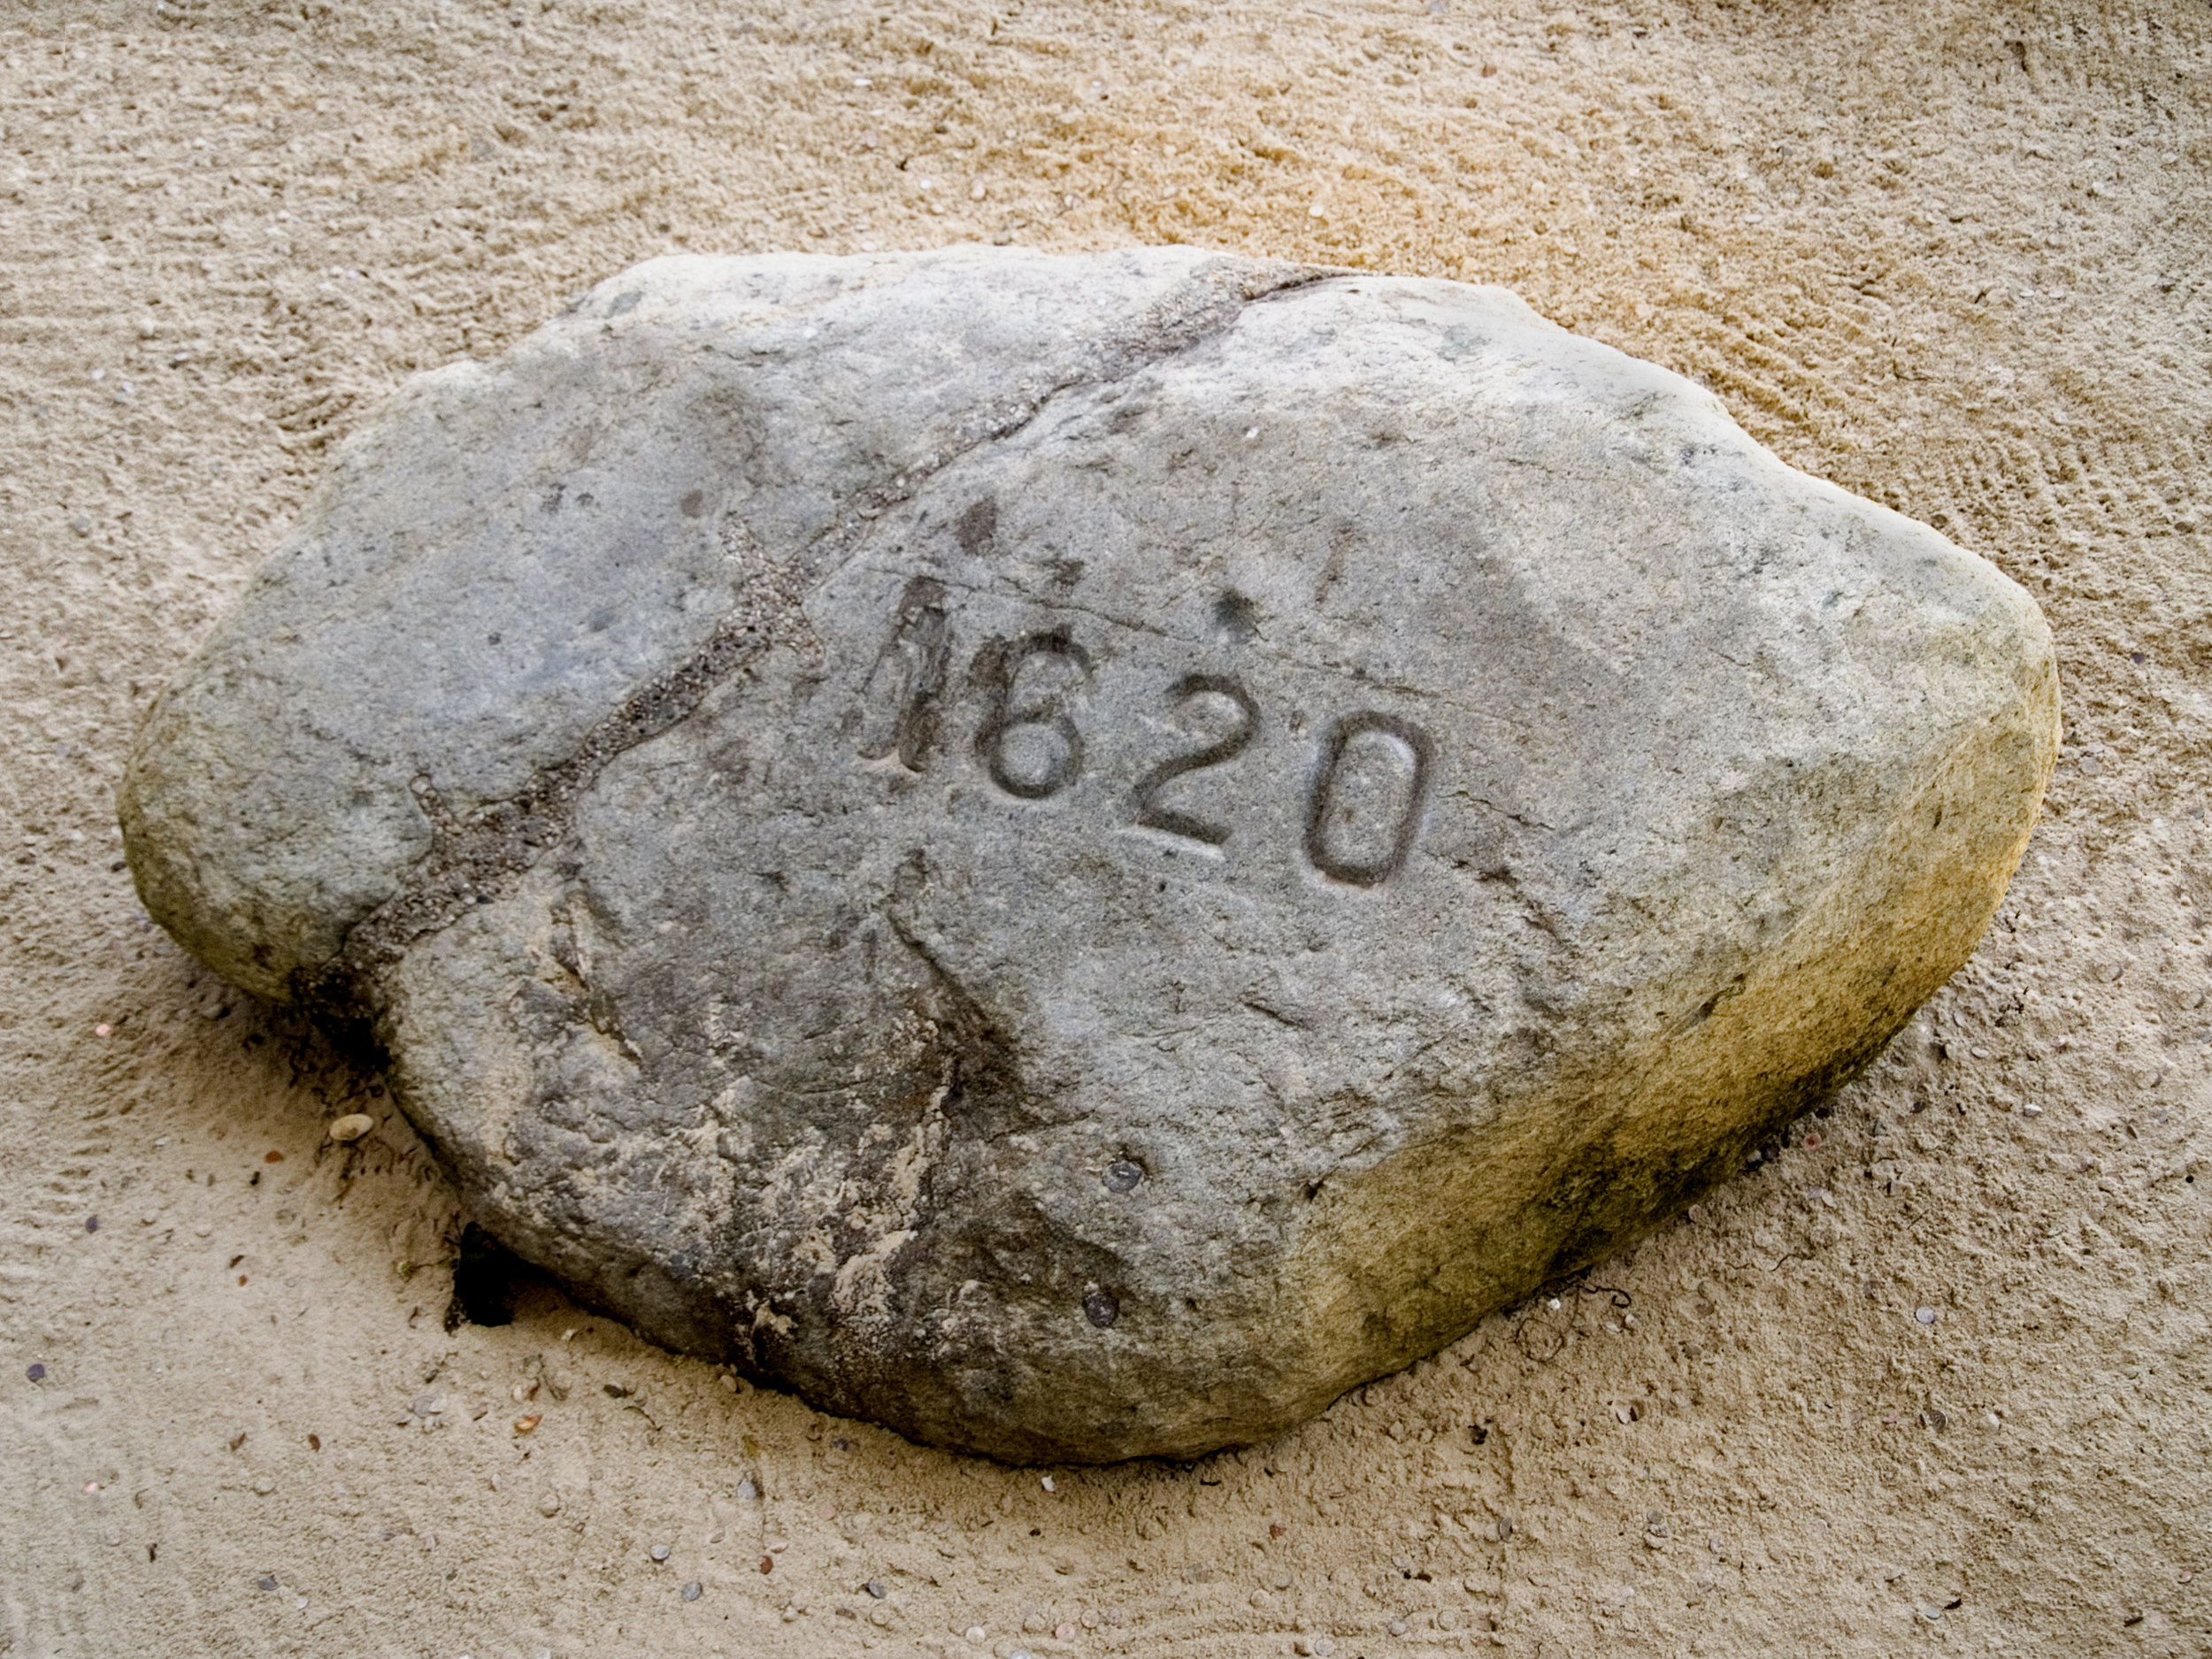 People today celebrate Plymouth Rock, but we don't know if the Pilgrims actually landed here.